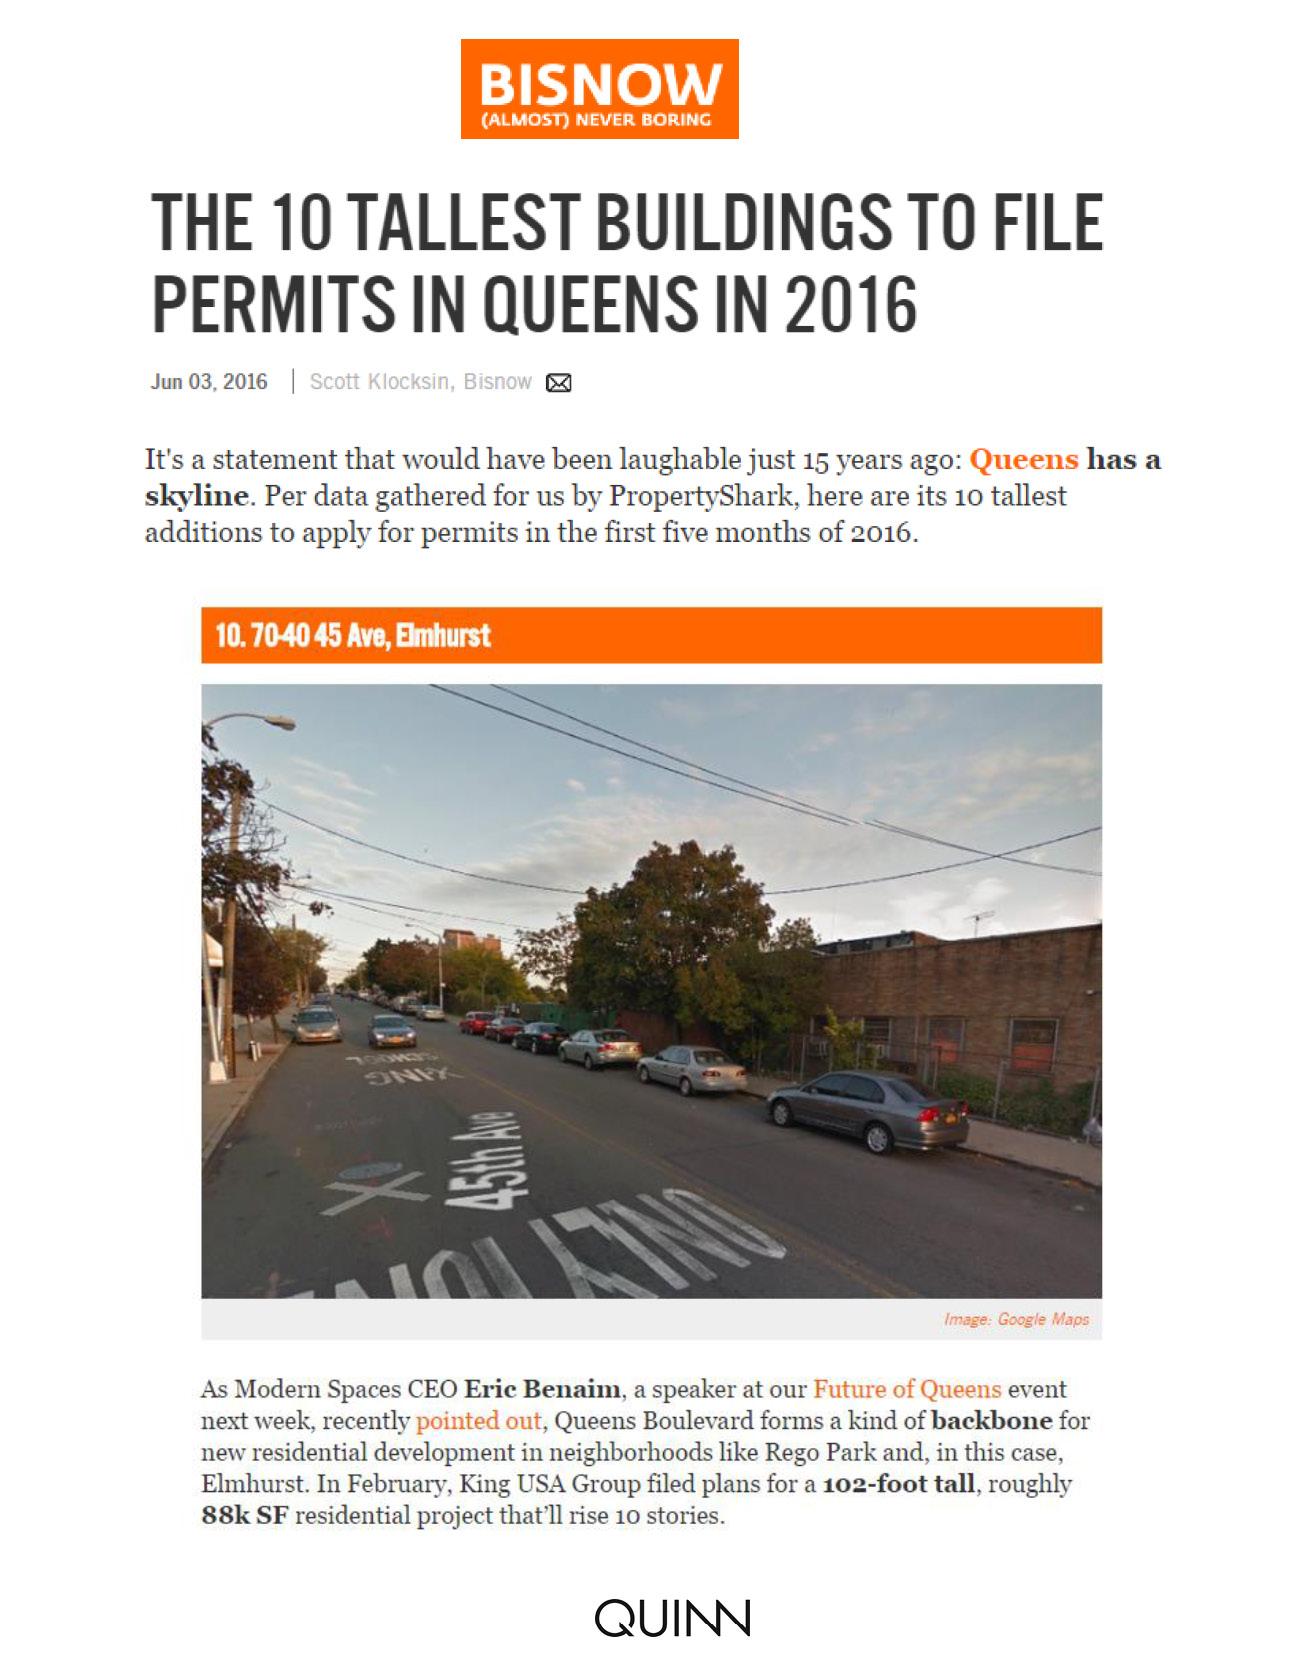 Bisnow - THE 10 TALLEST BUILDINGS TO FILE PERMITS IN QUEENS IN 2016 - 06...